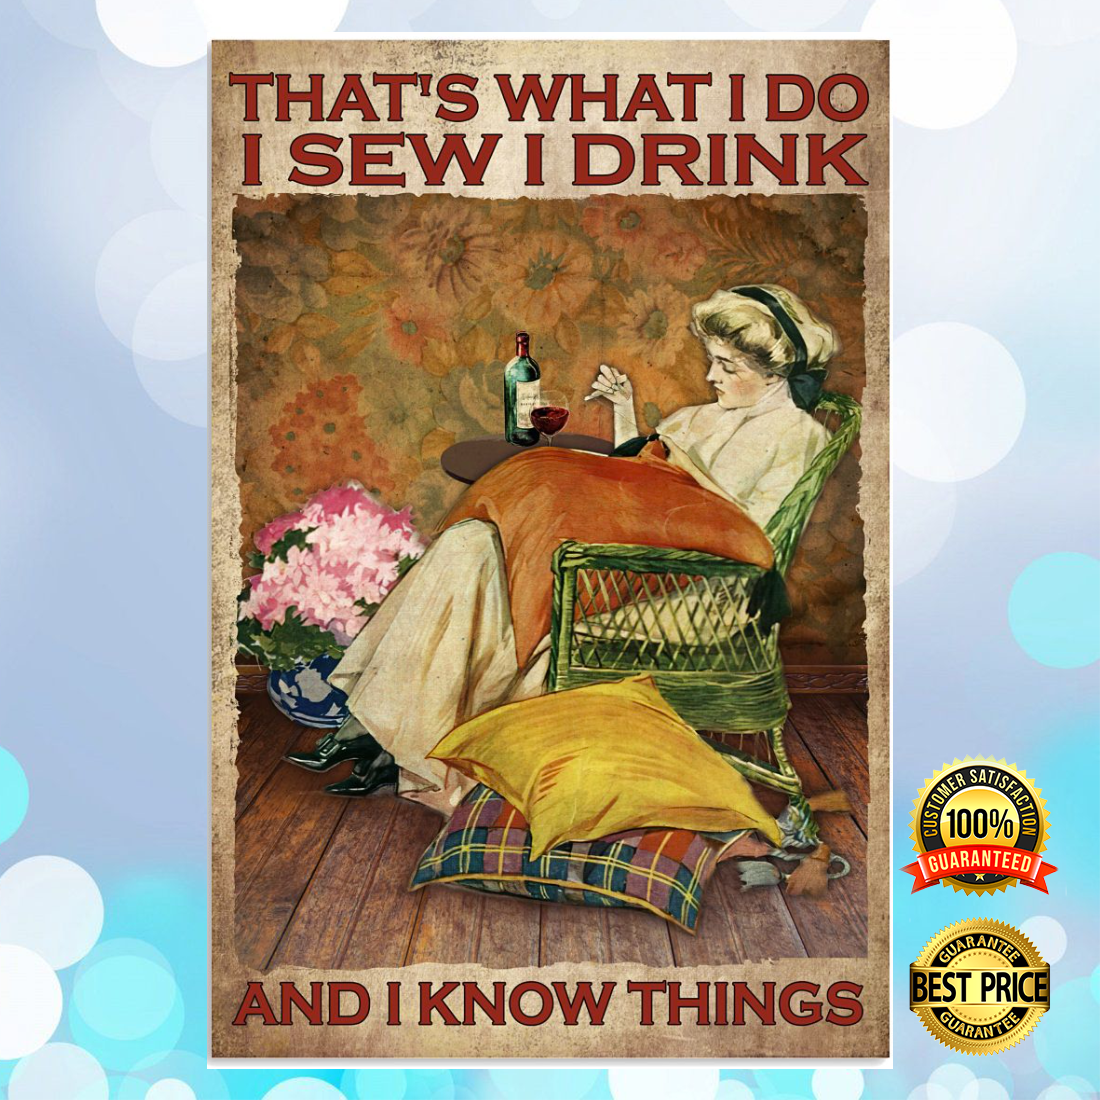 THAT'S WHAT I DO I SEW I DRINK AND I KNOW THINGS POSTER 5